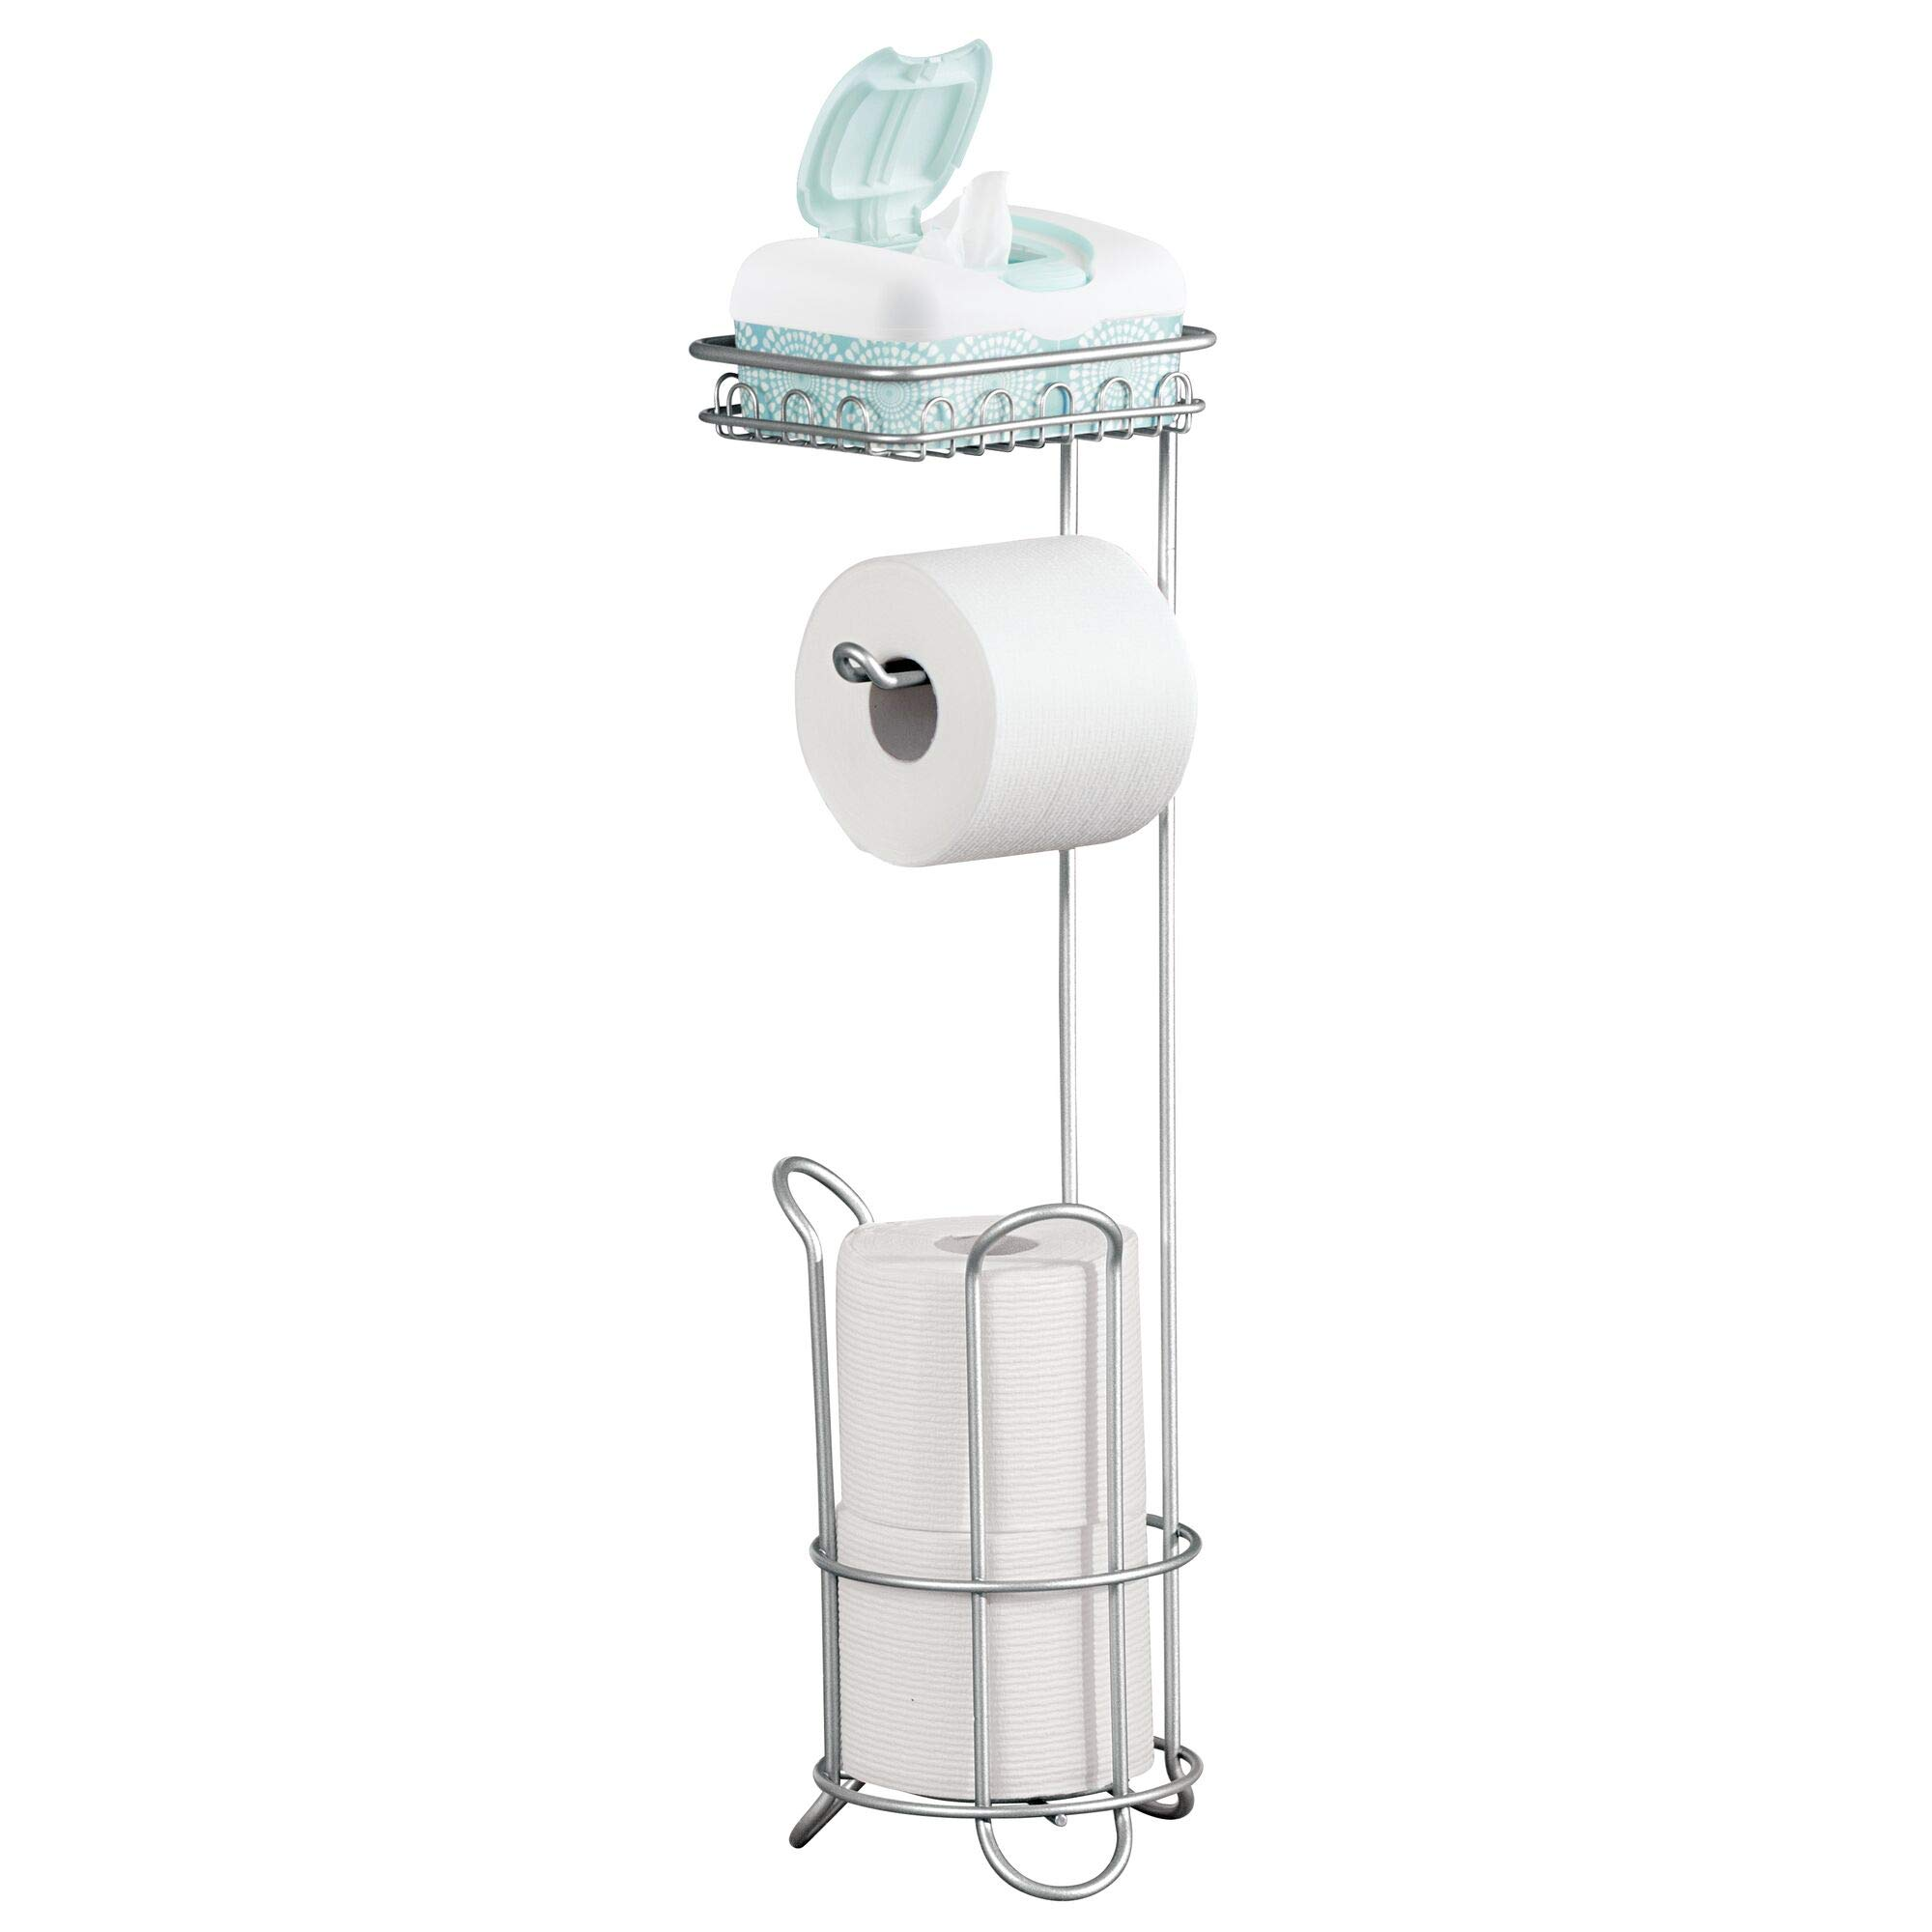 iDesign Classico Free Standing Toilet Paper Holder with Shelf for Bathroom - Chrome